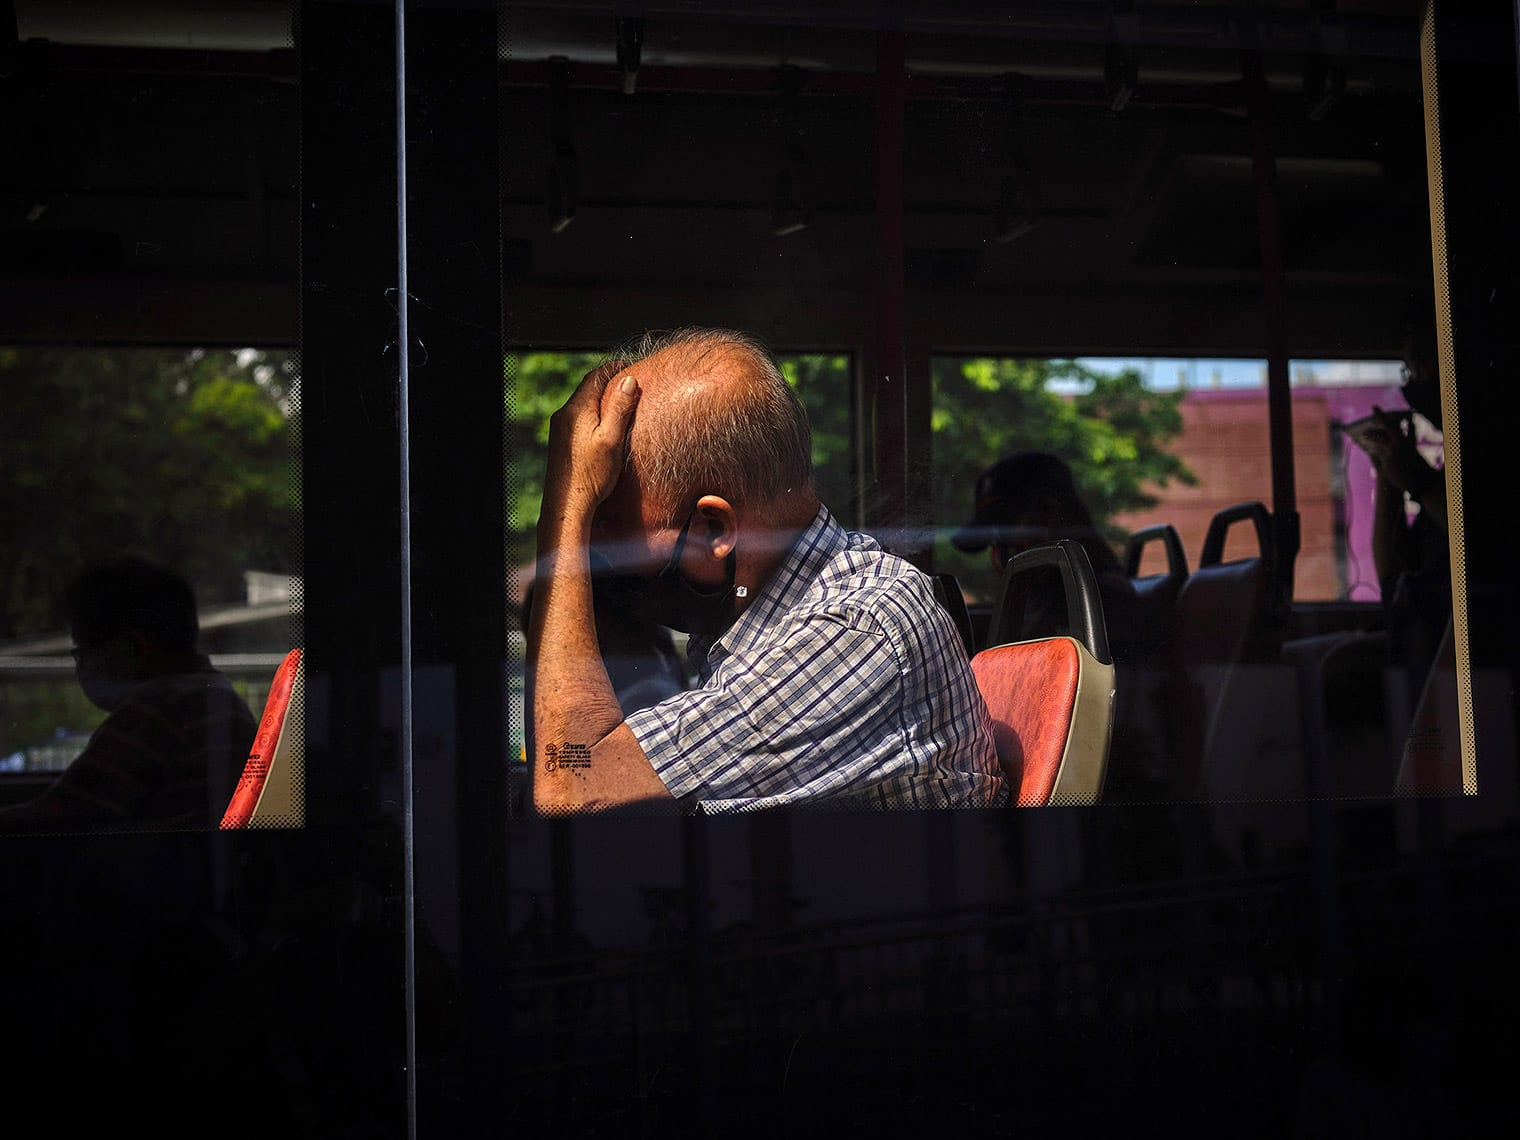 Masked man leans against glass window of a bus, cradling his head